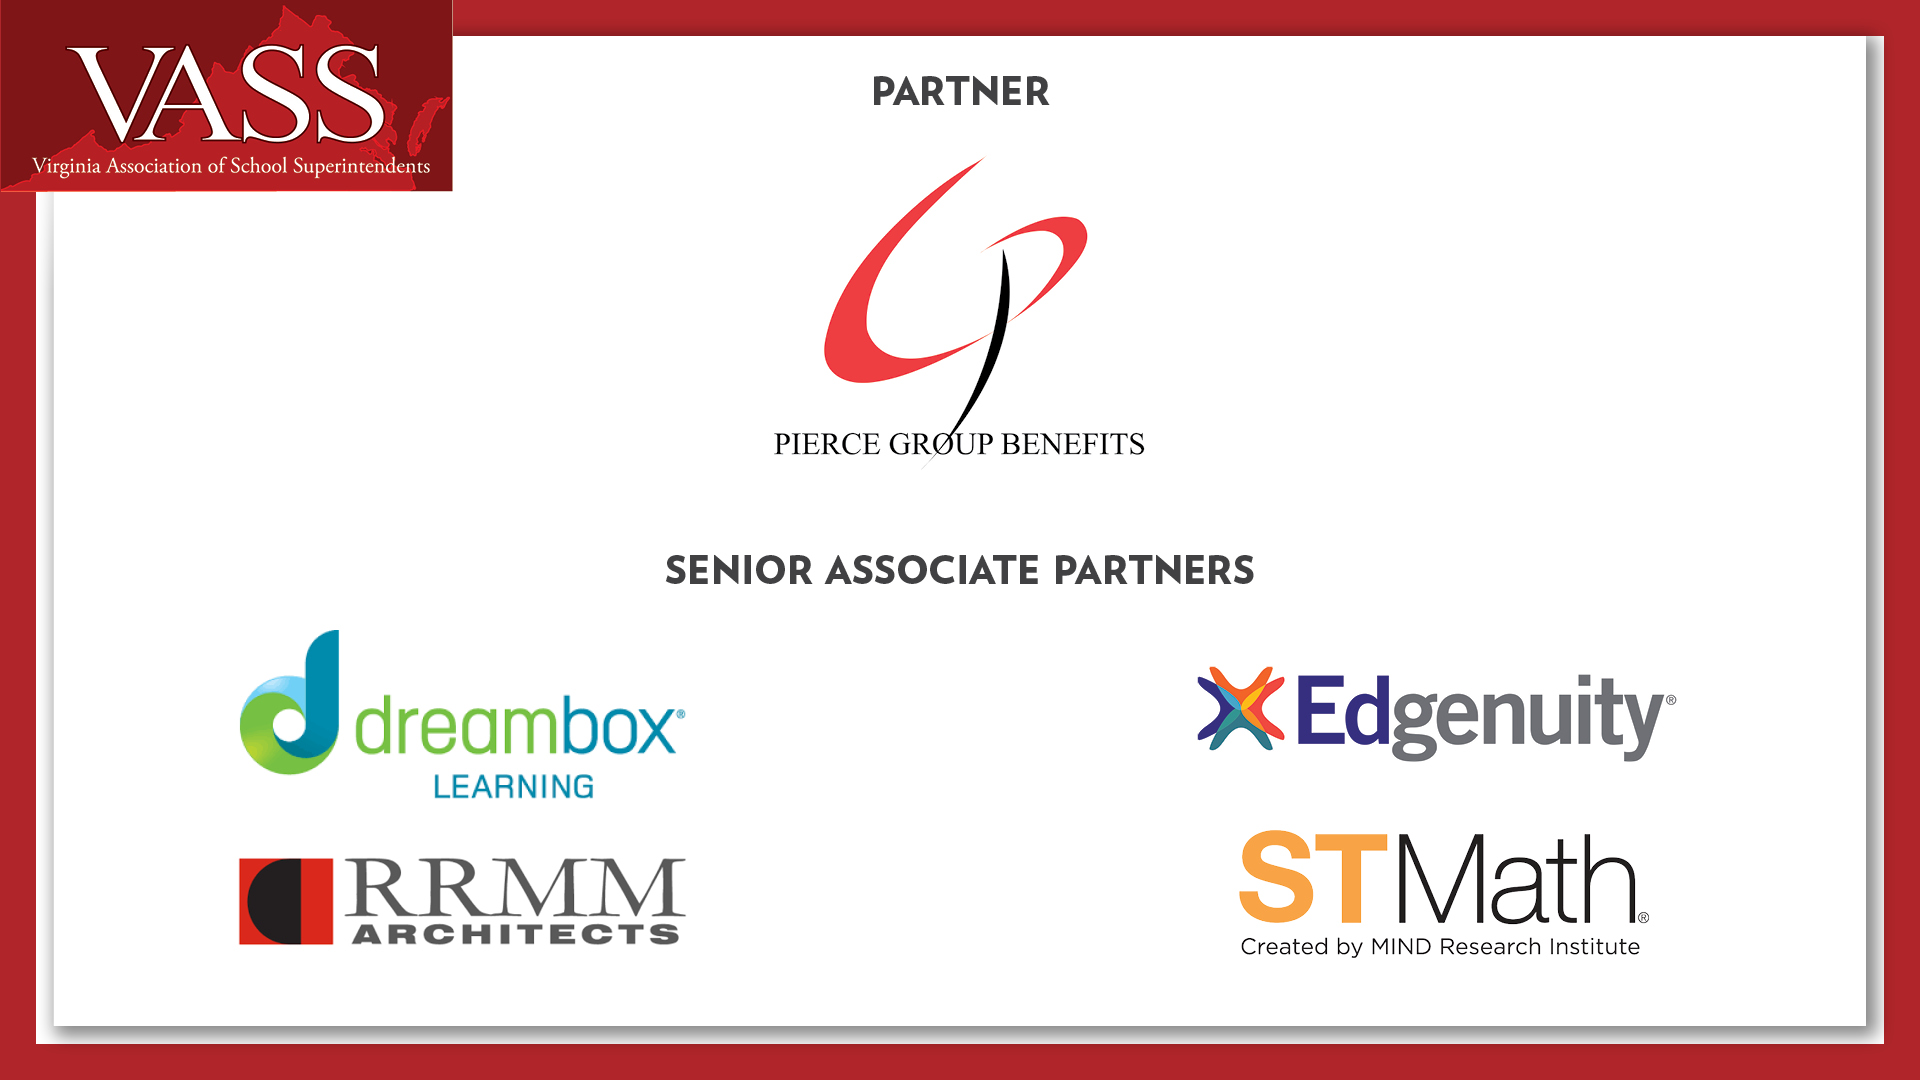 VASS Thanks our Business Partners and Senior Associate Partners